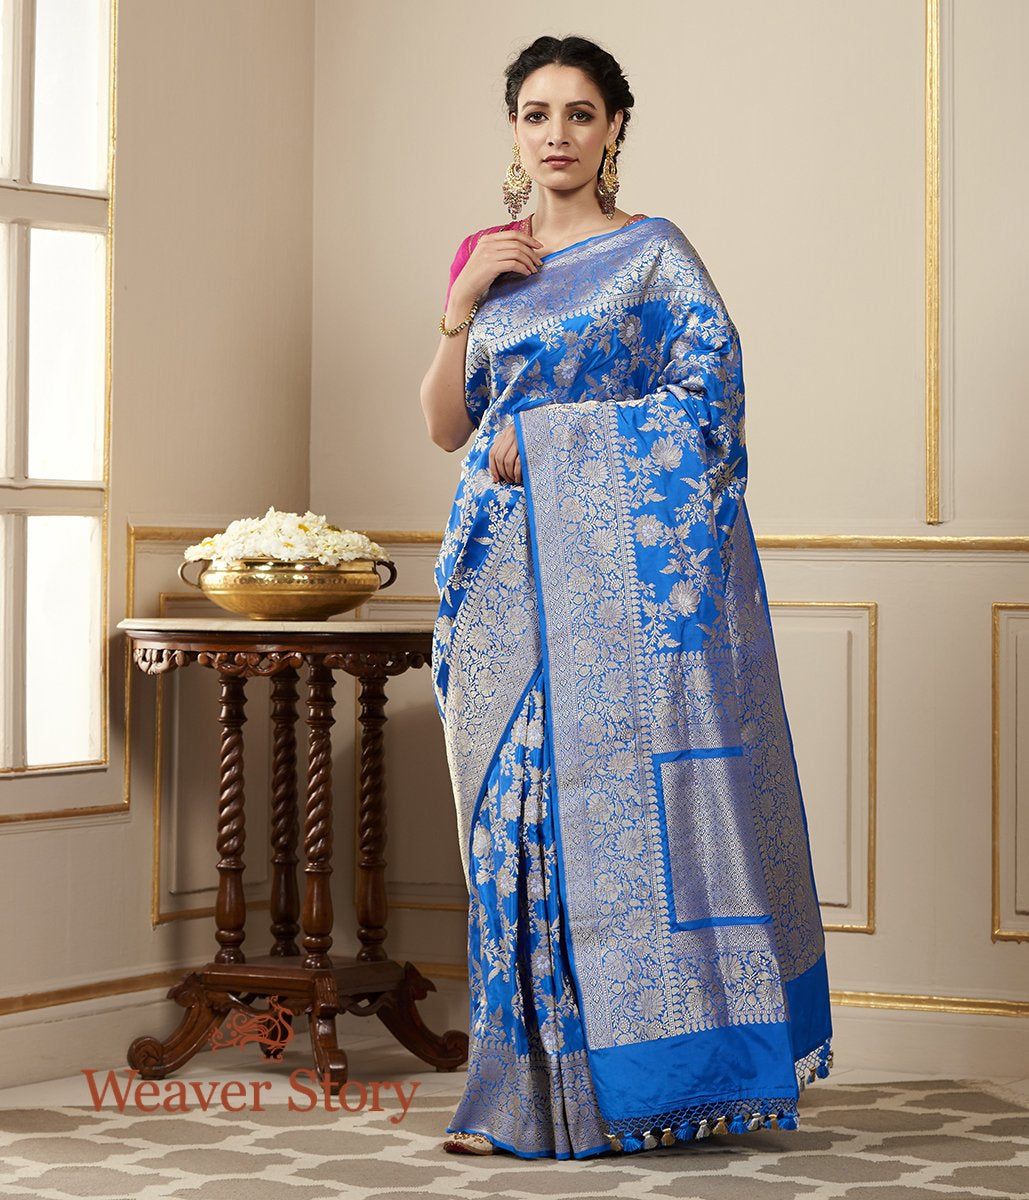 Handwoven Blue Kadhwa Jangla Saree with Sona Rupa Zari